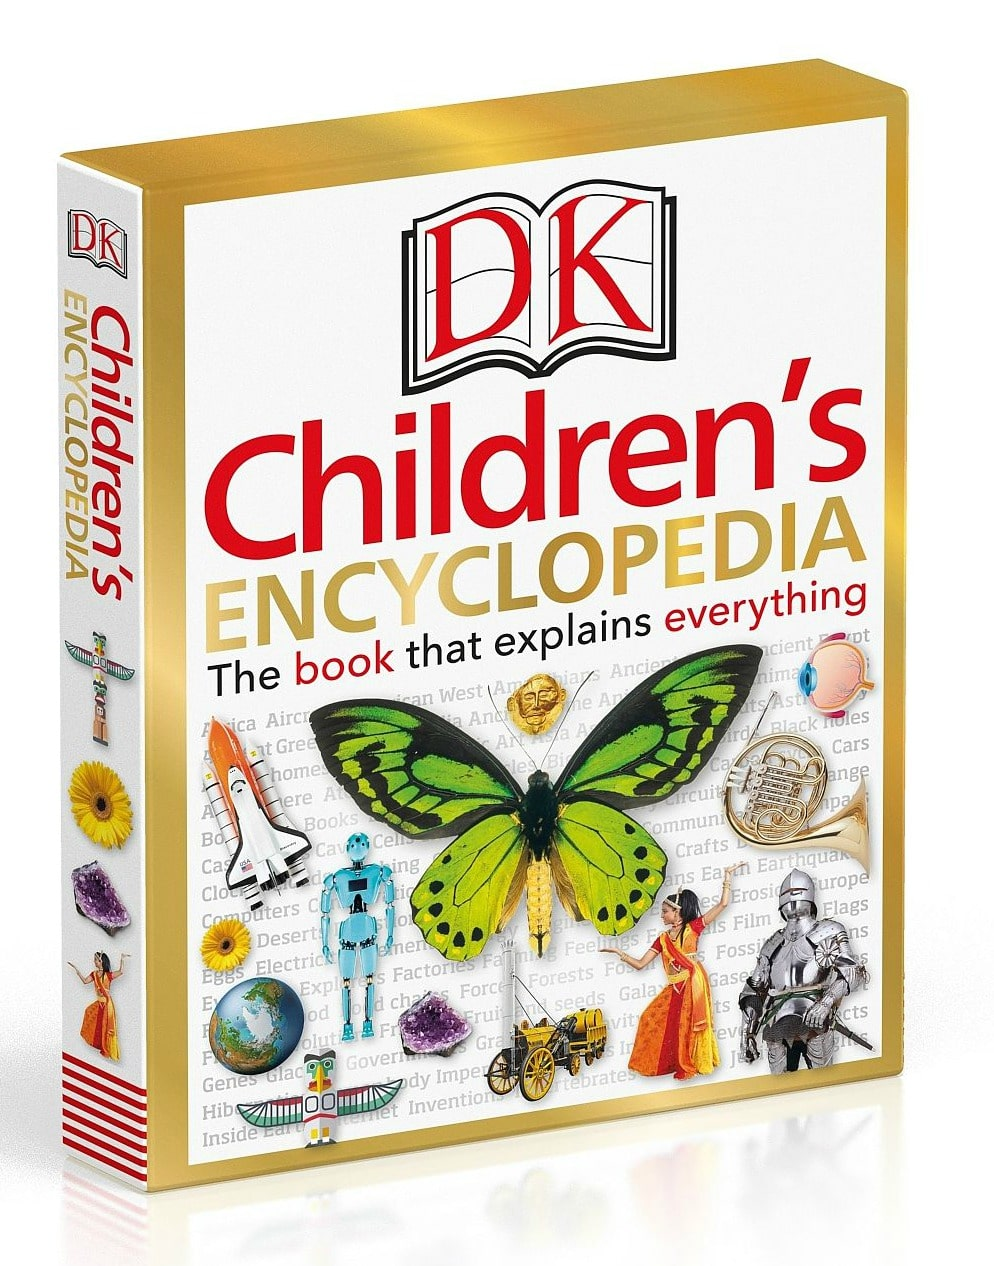 Learning with DK Books